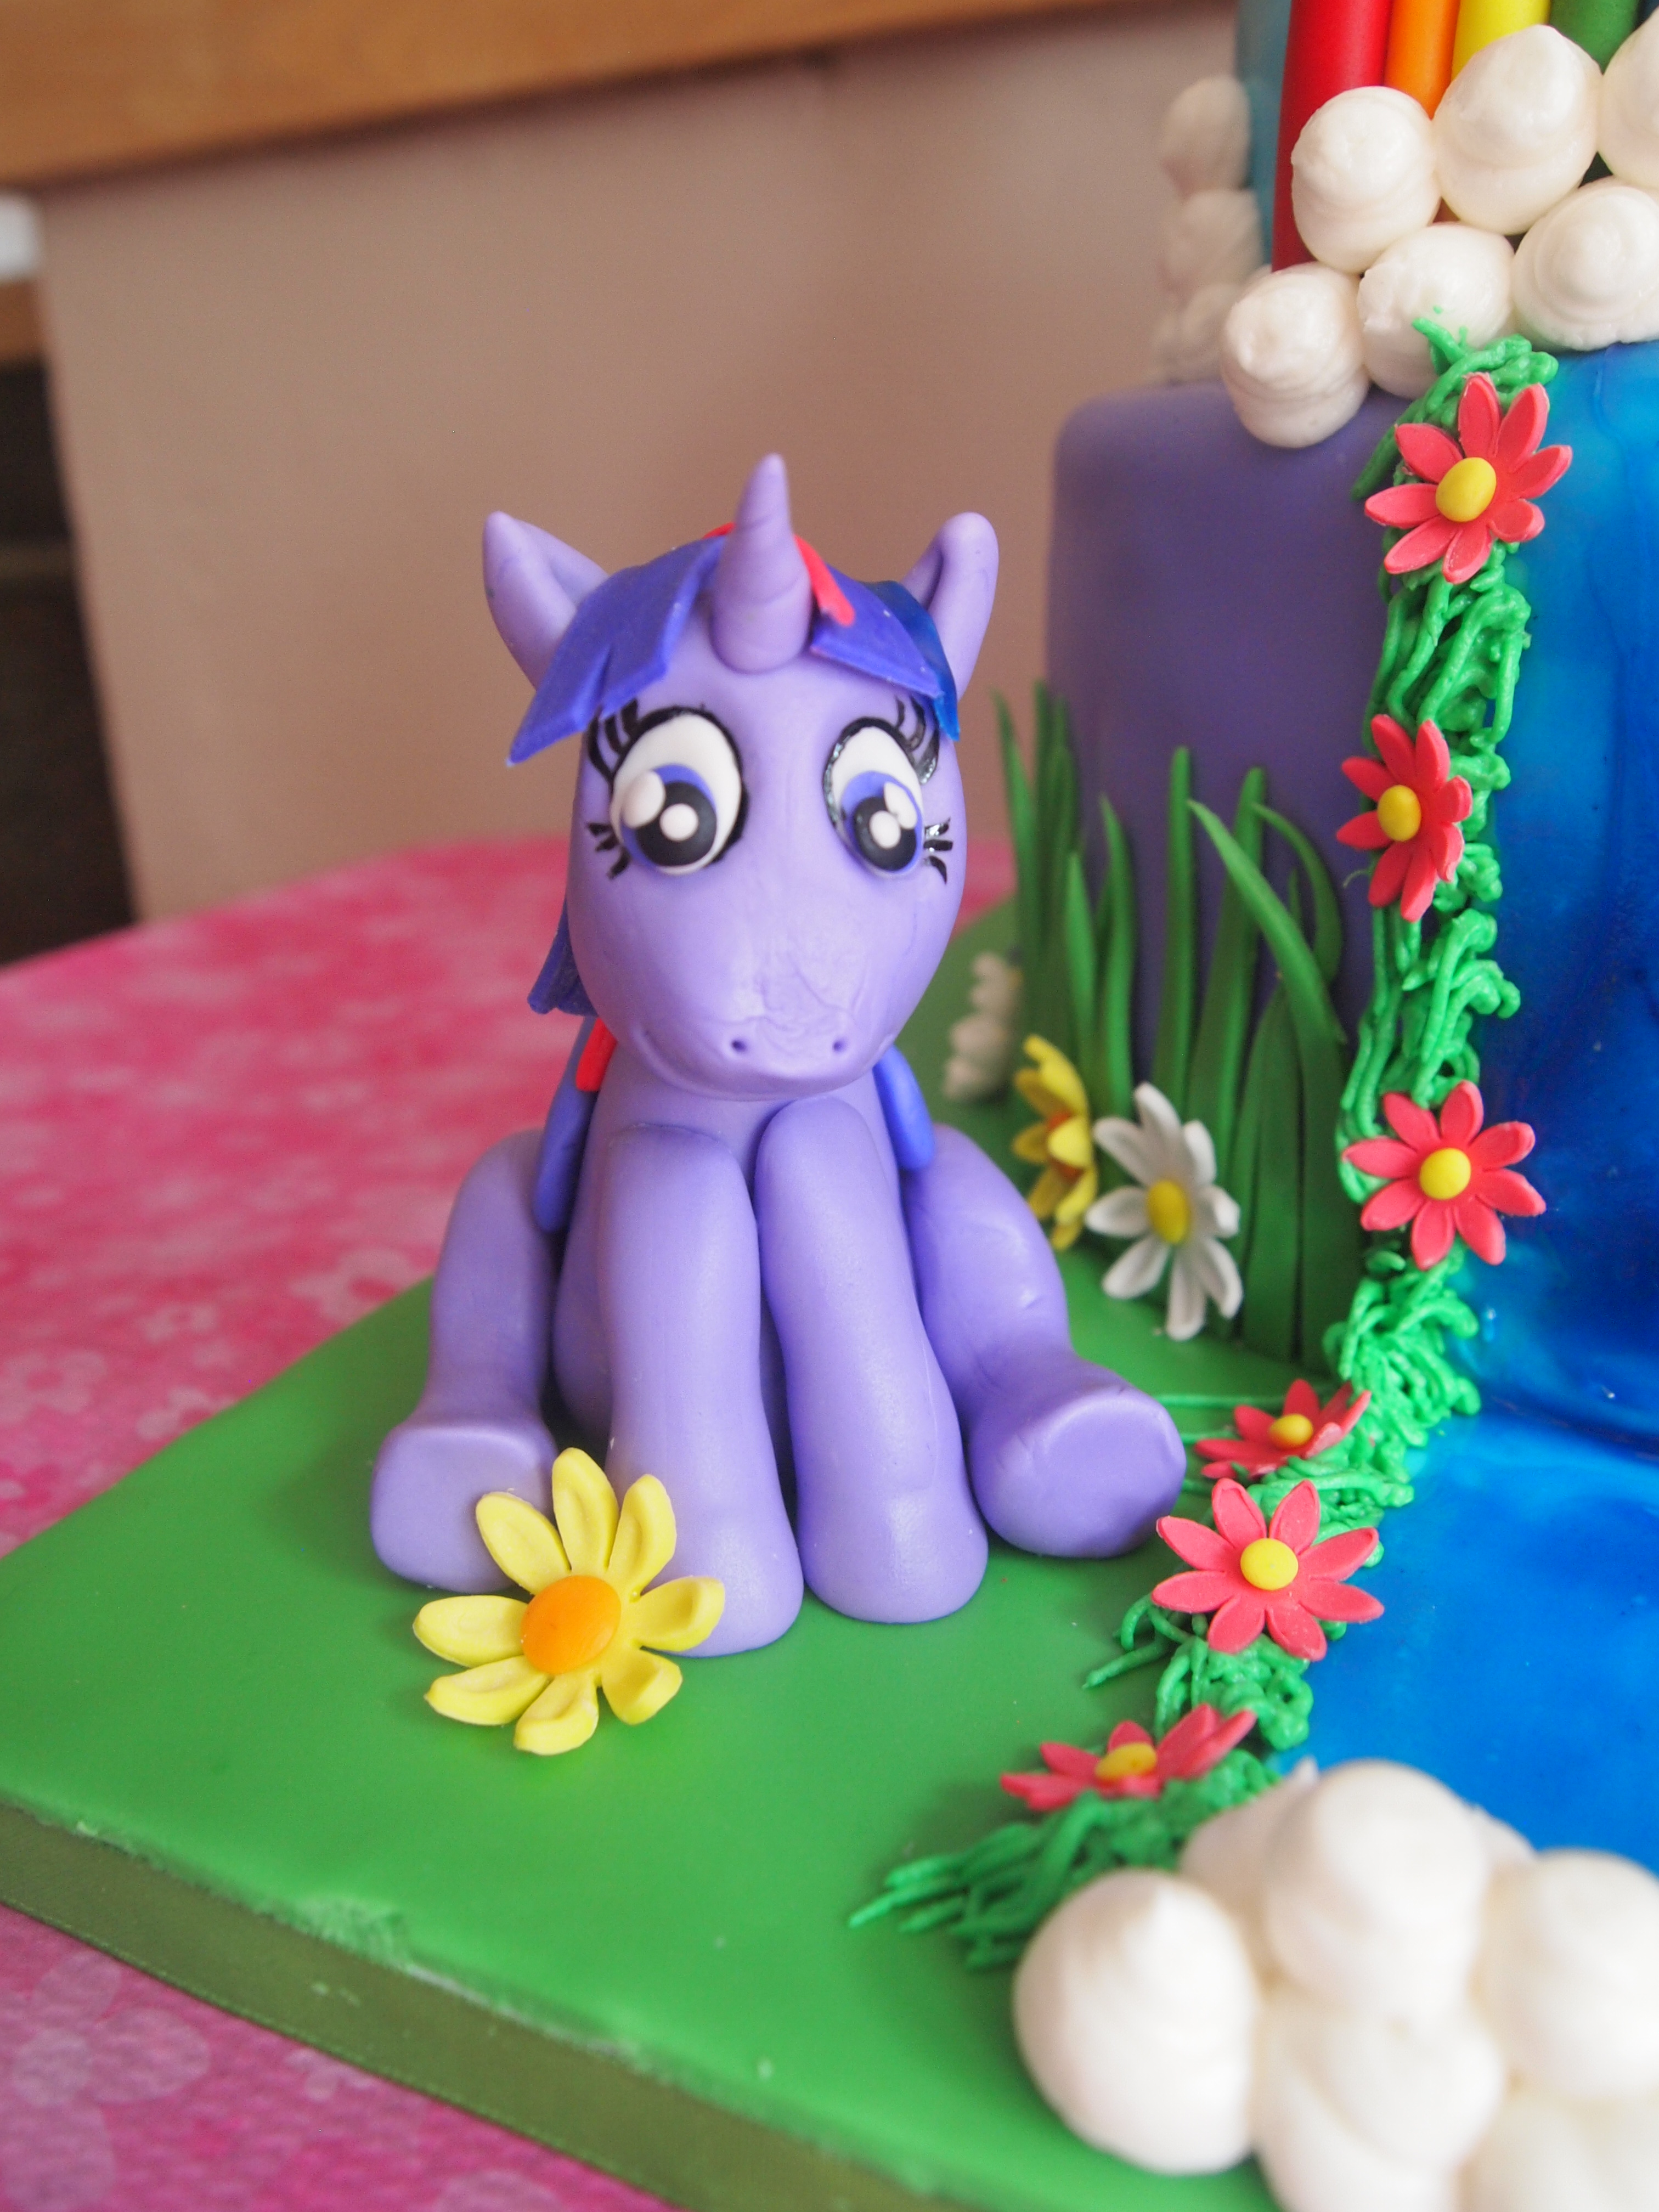 Twilight Sparkle Figurine